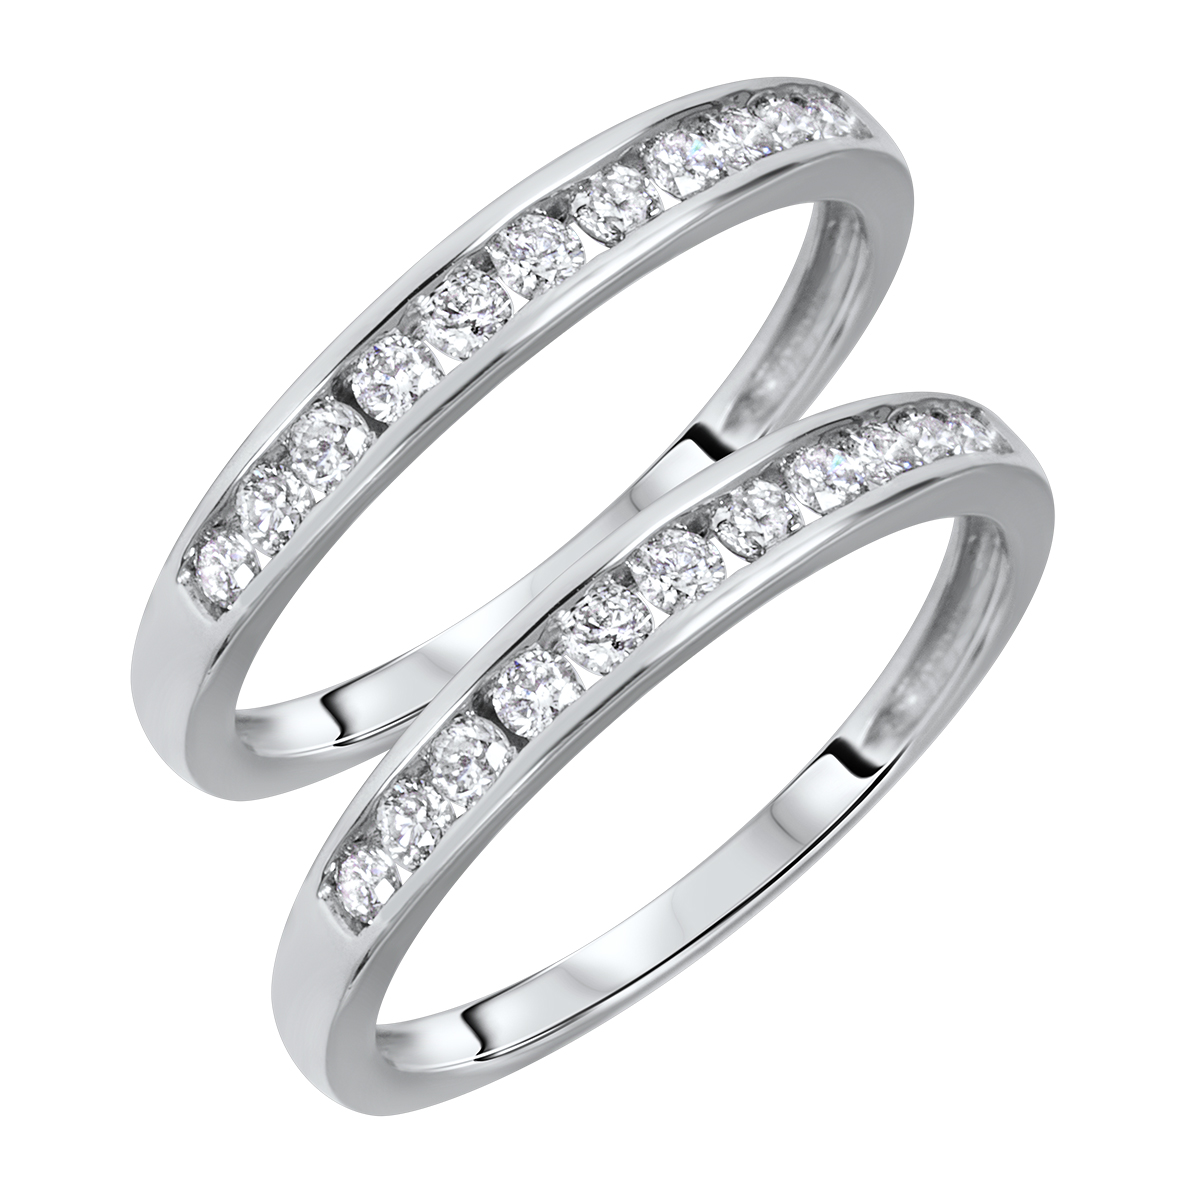 1/2 Carat T.W. Round Cut Ladies Same Sex Wedding Band Set 14K White Gold